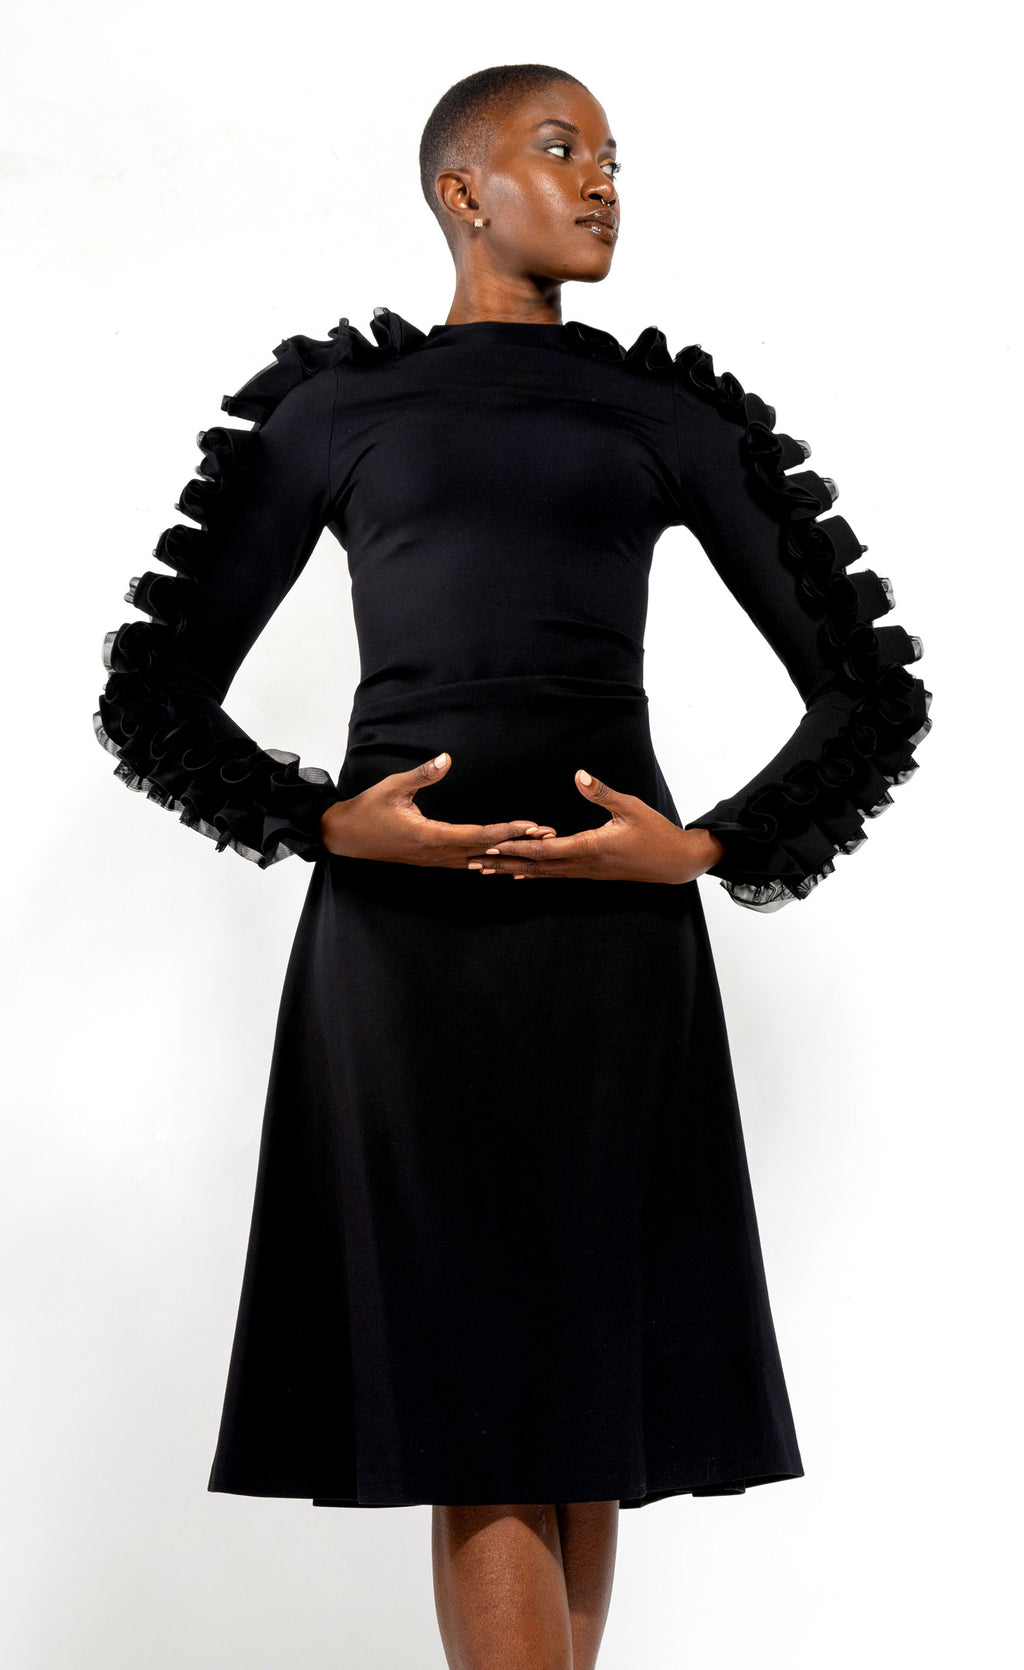 Black Pontee Jersey with Ruffles down the sleeves